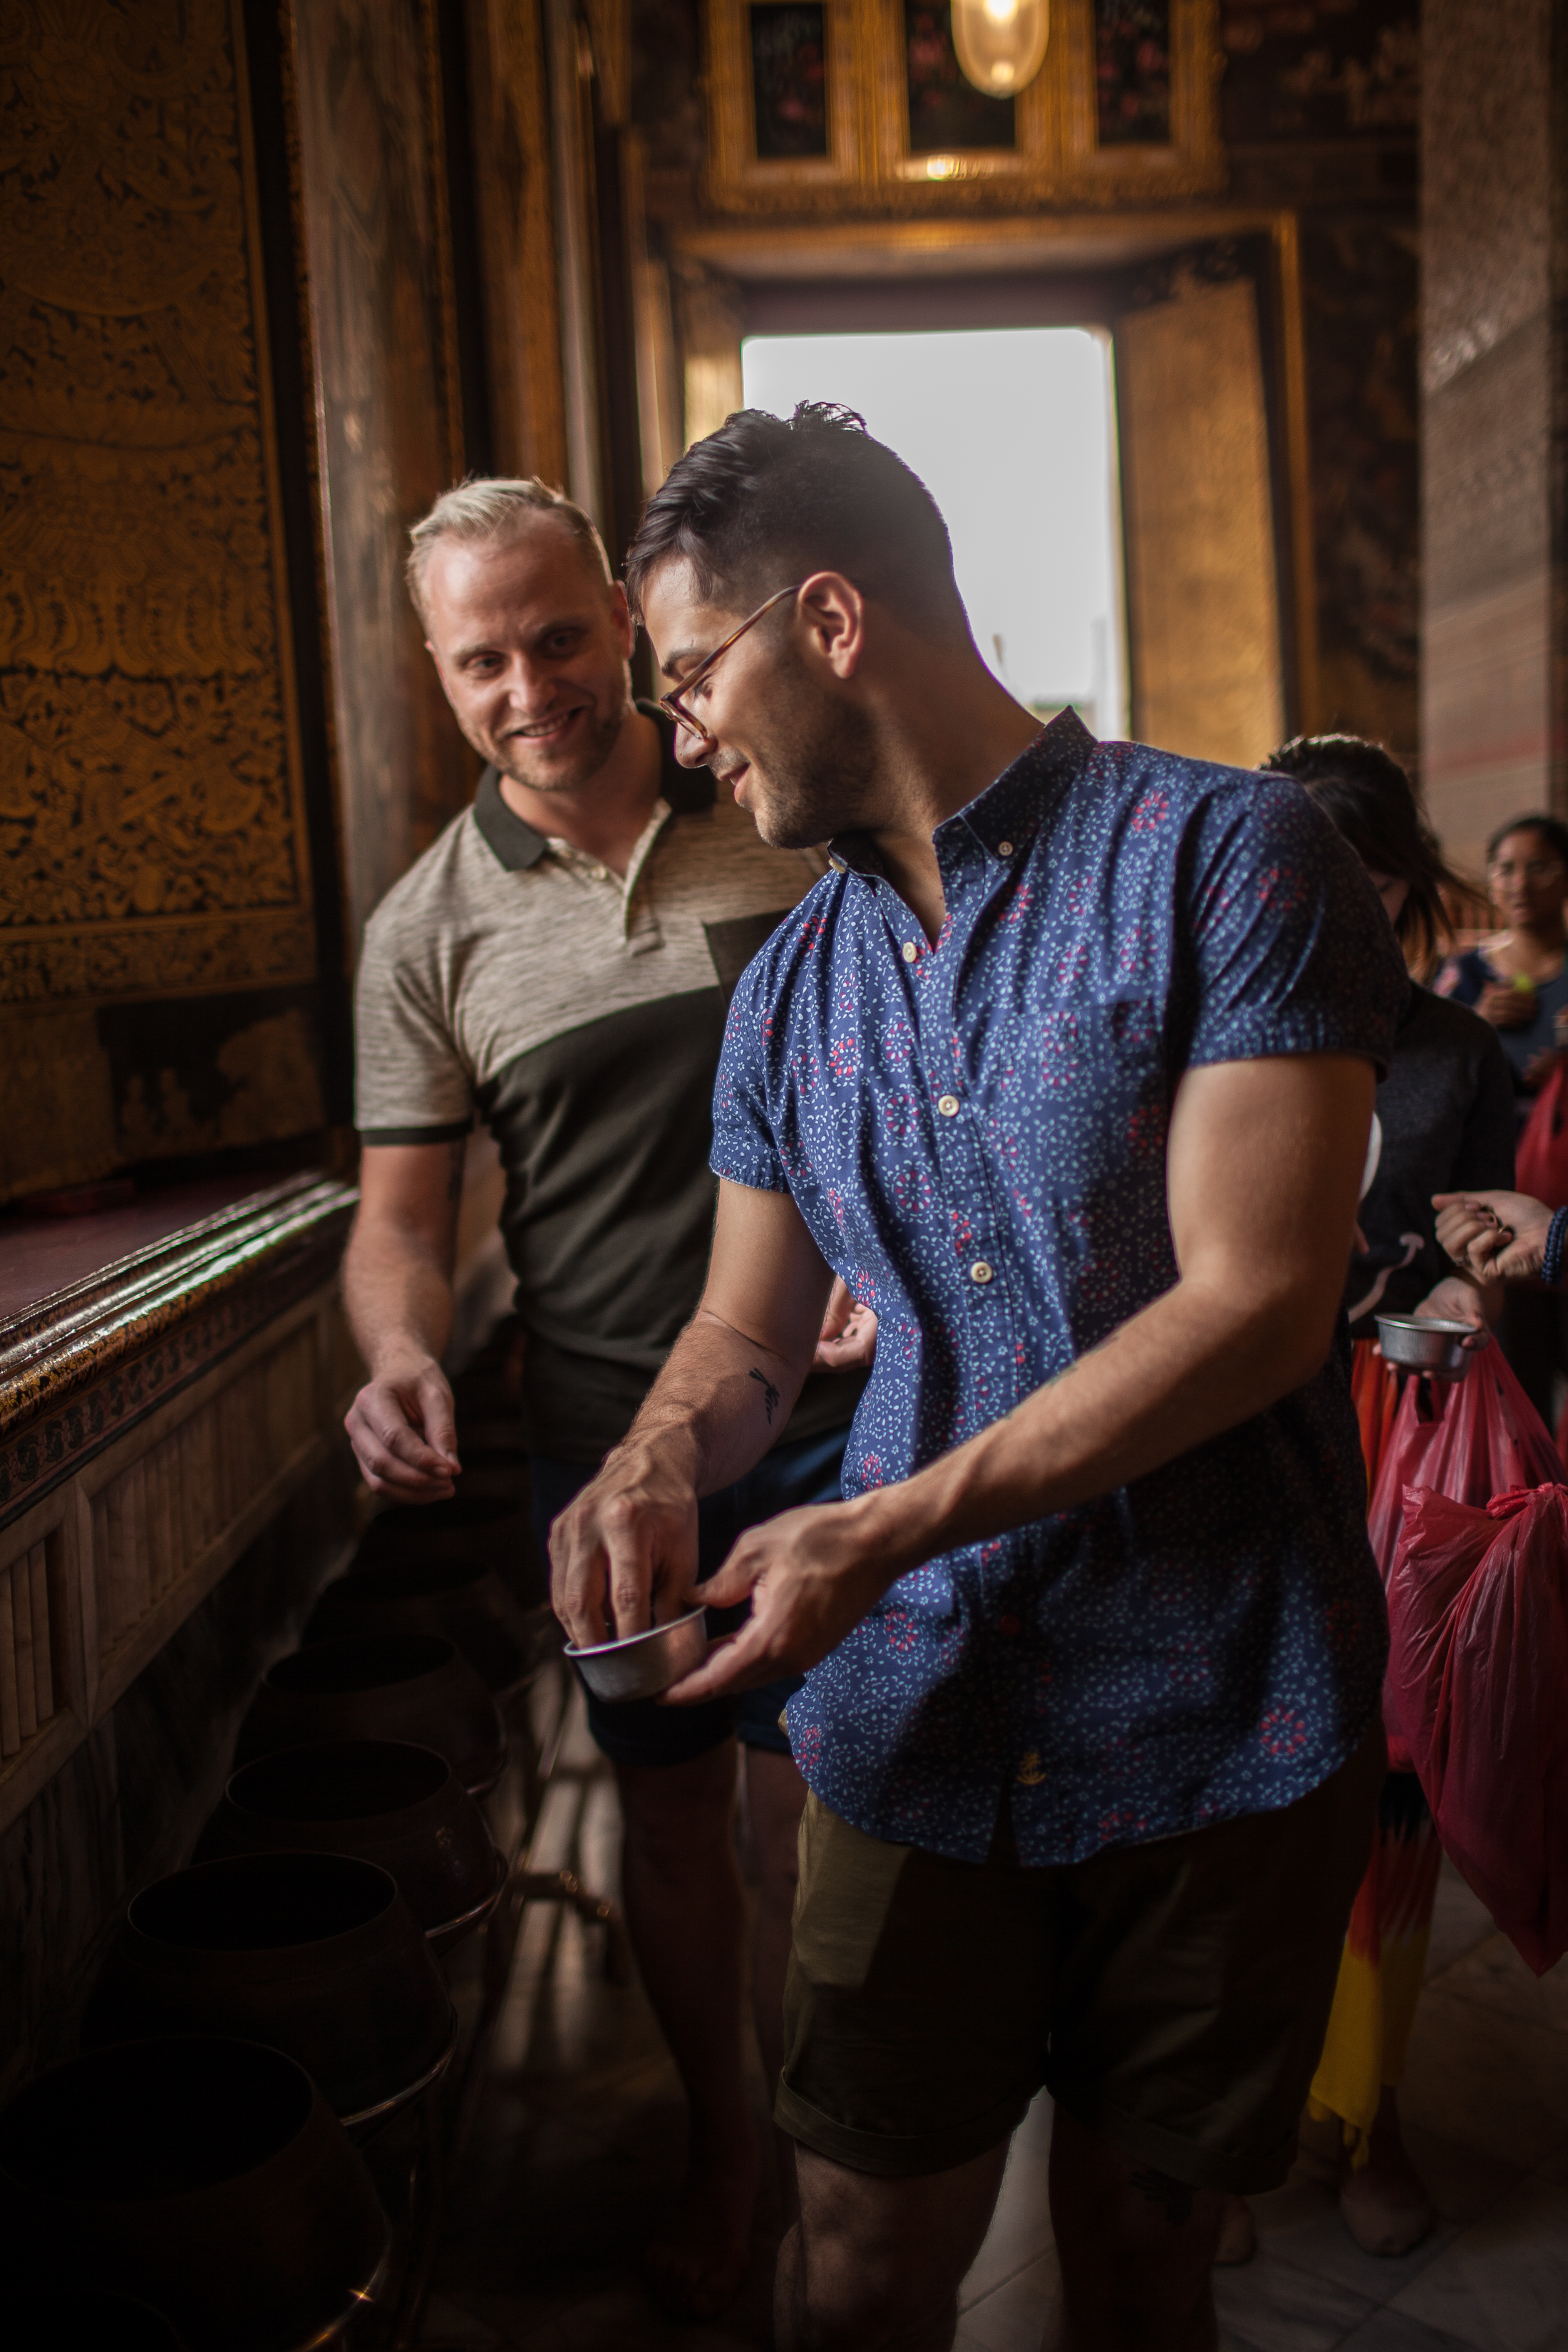 Giving coins at Temple of reclining buddha